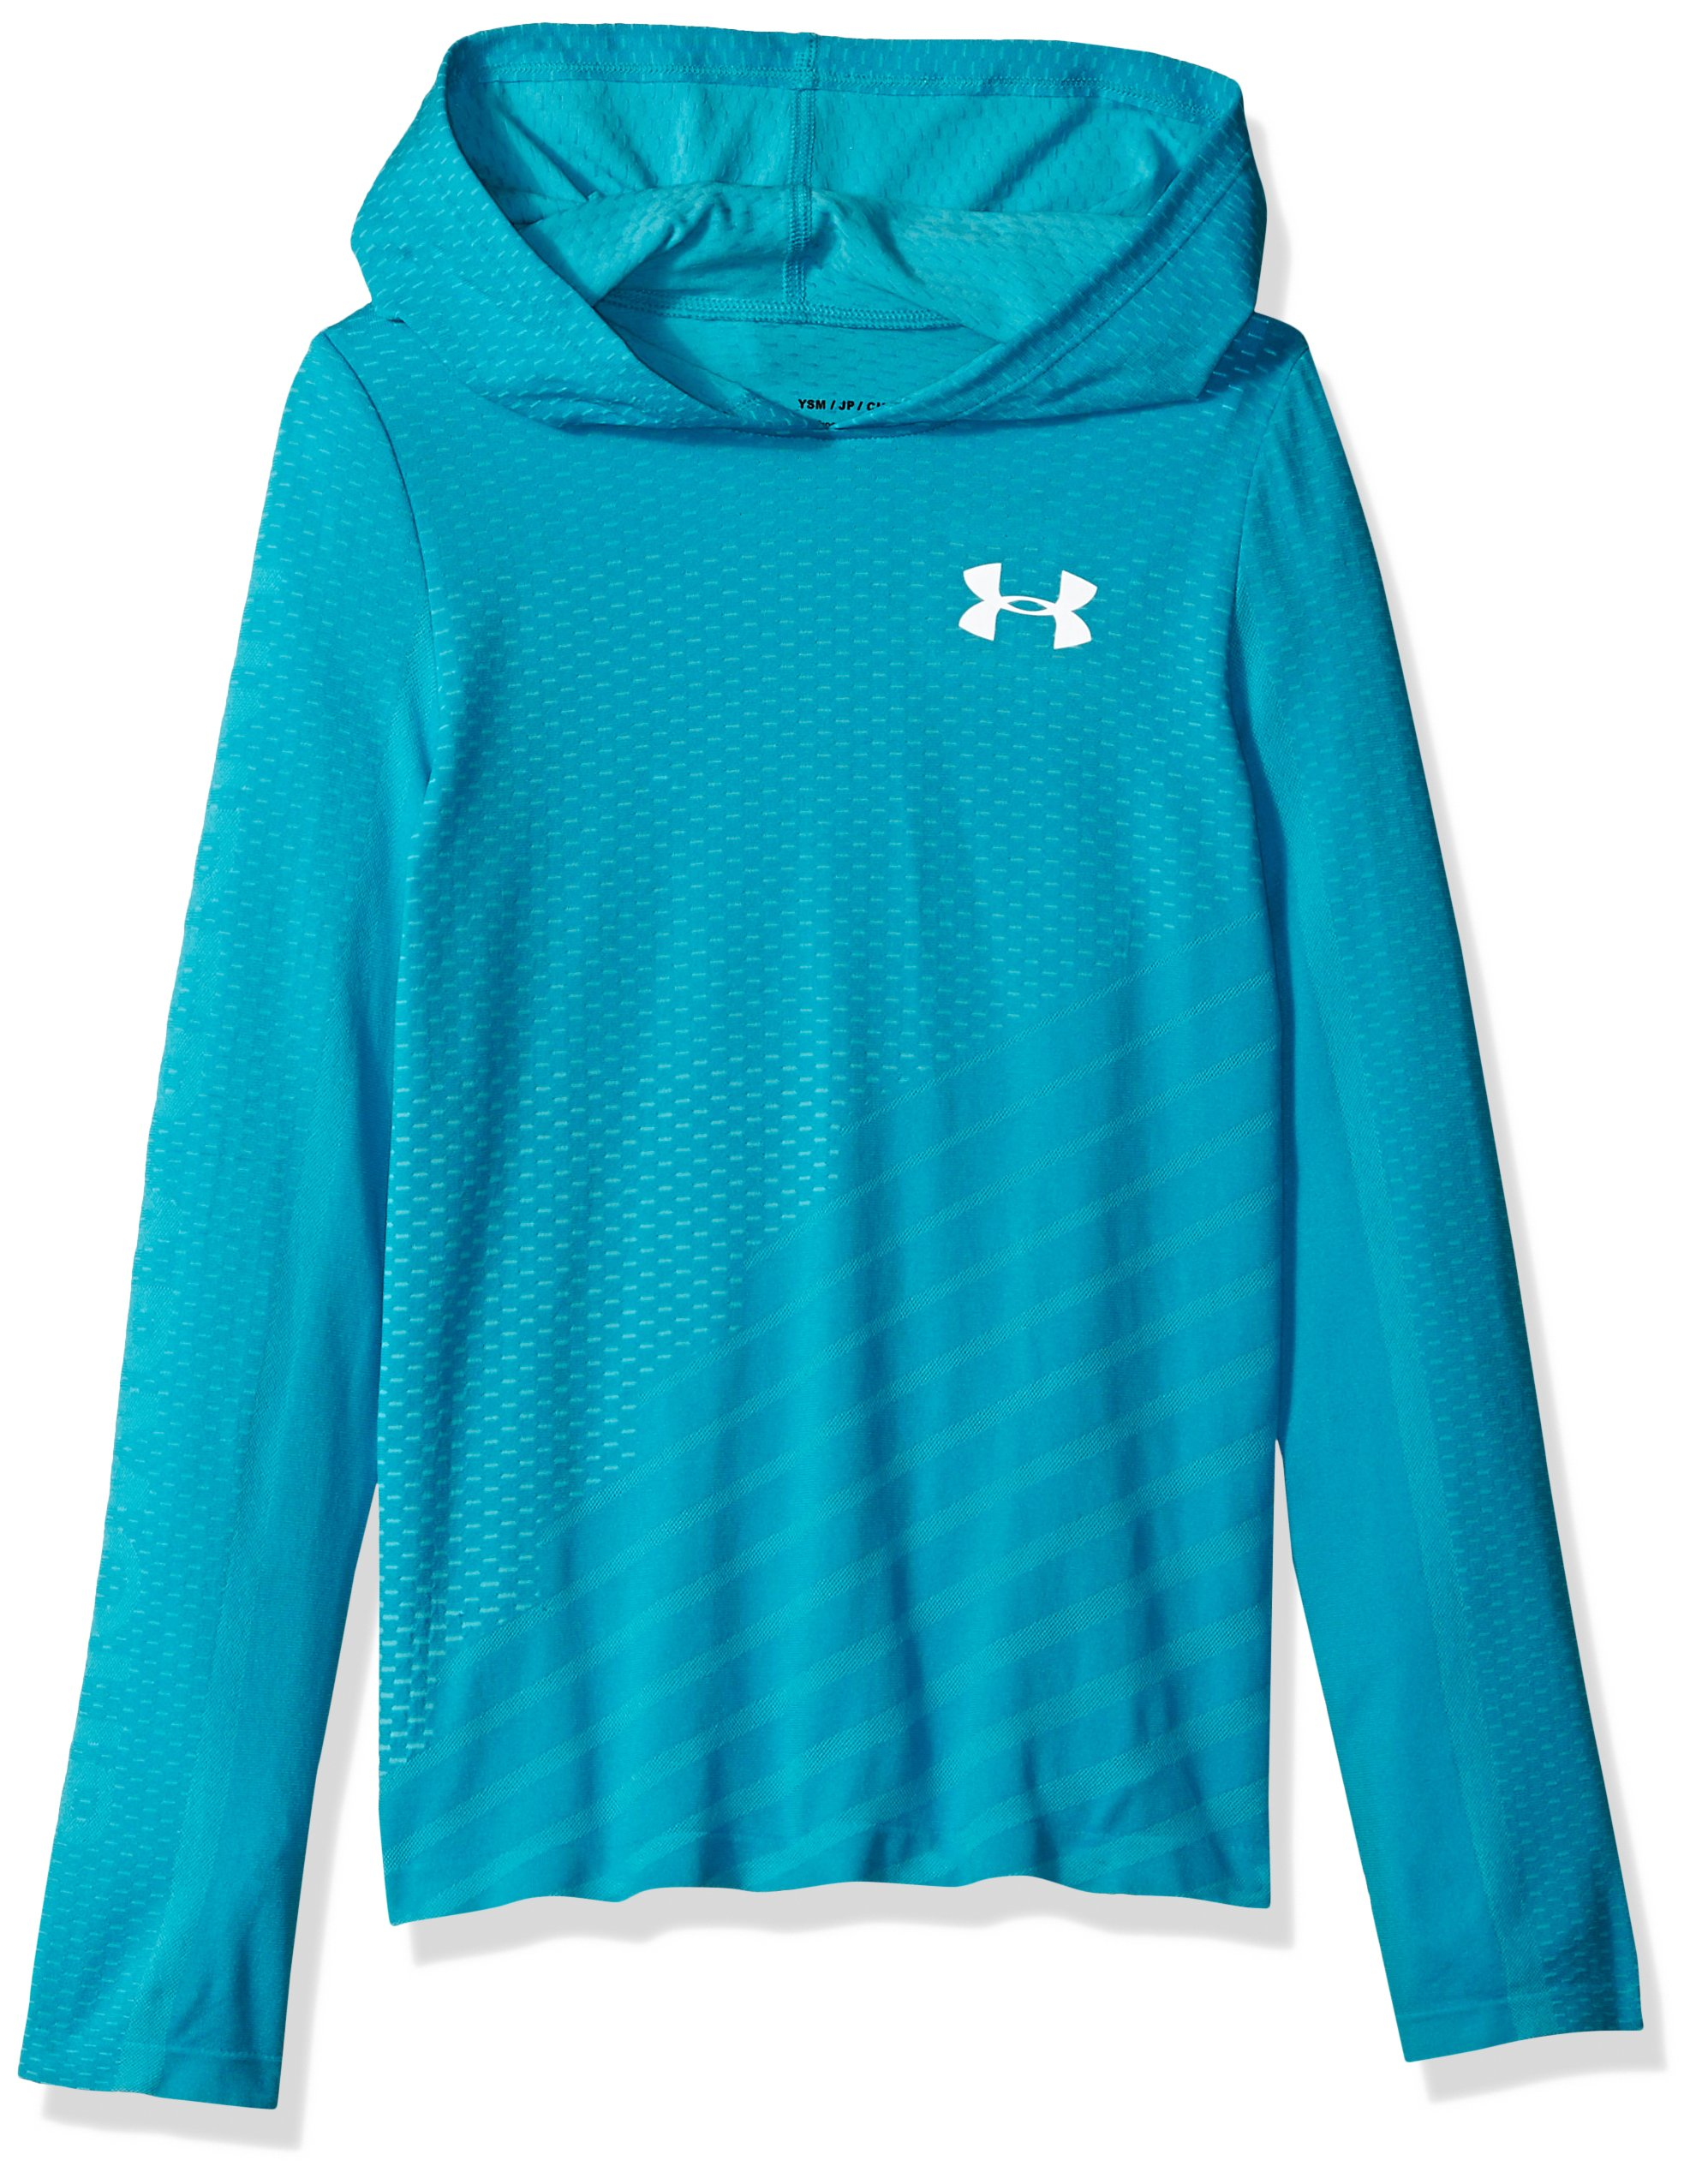 Under Armour Girls Seamless Hoodie, Venetian Blue (448)/White, Youth X-Large by Under Armour